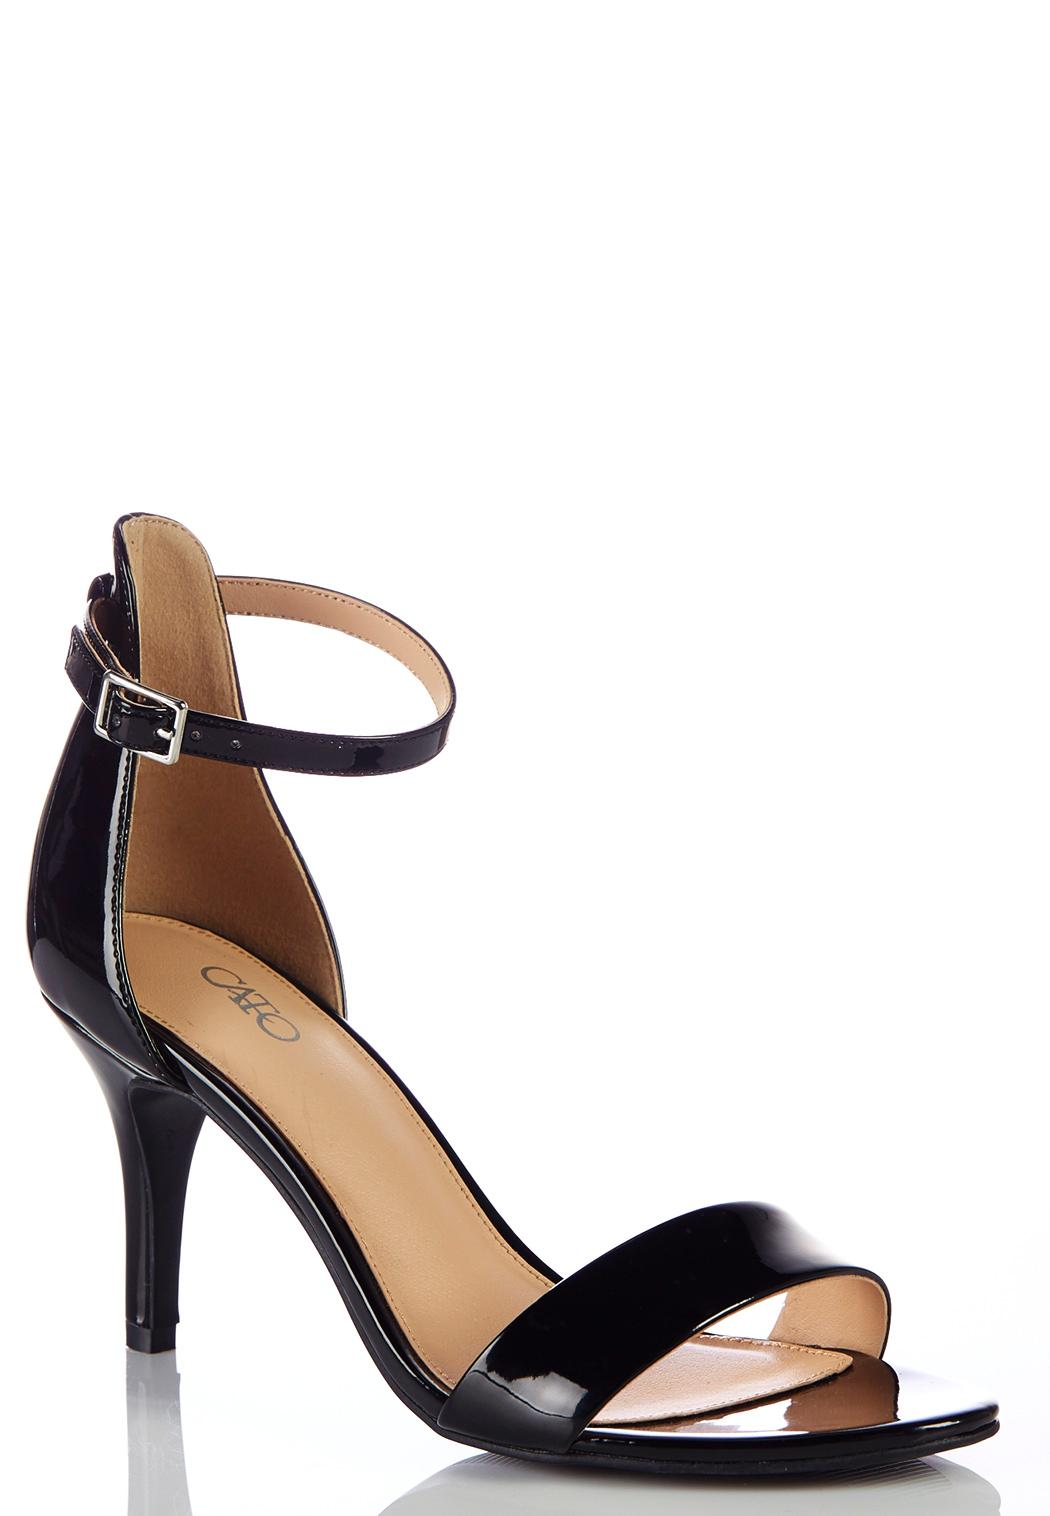 Wide Width Ankle Strap Heeled Sandals Wide Width Cato Fashions